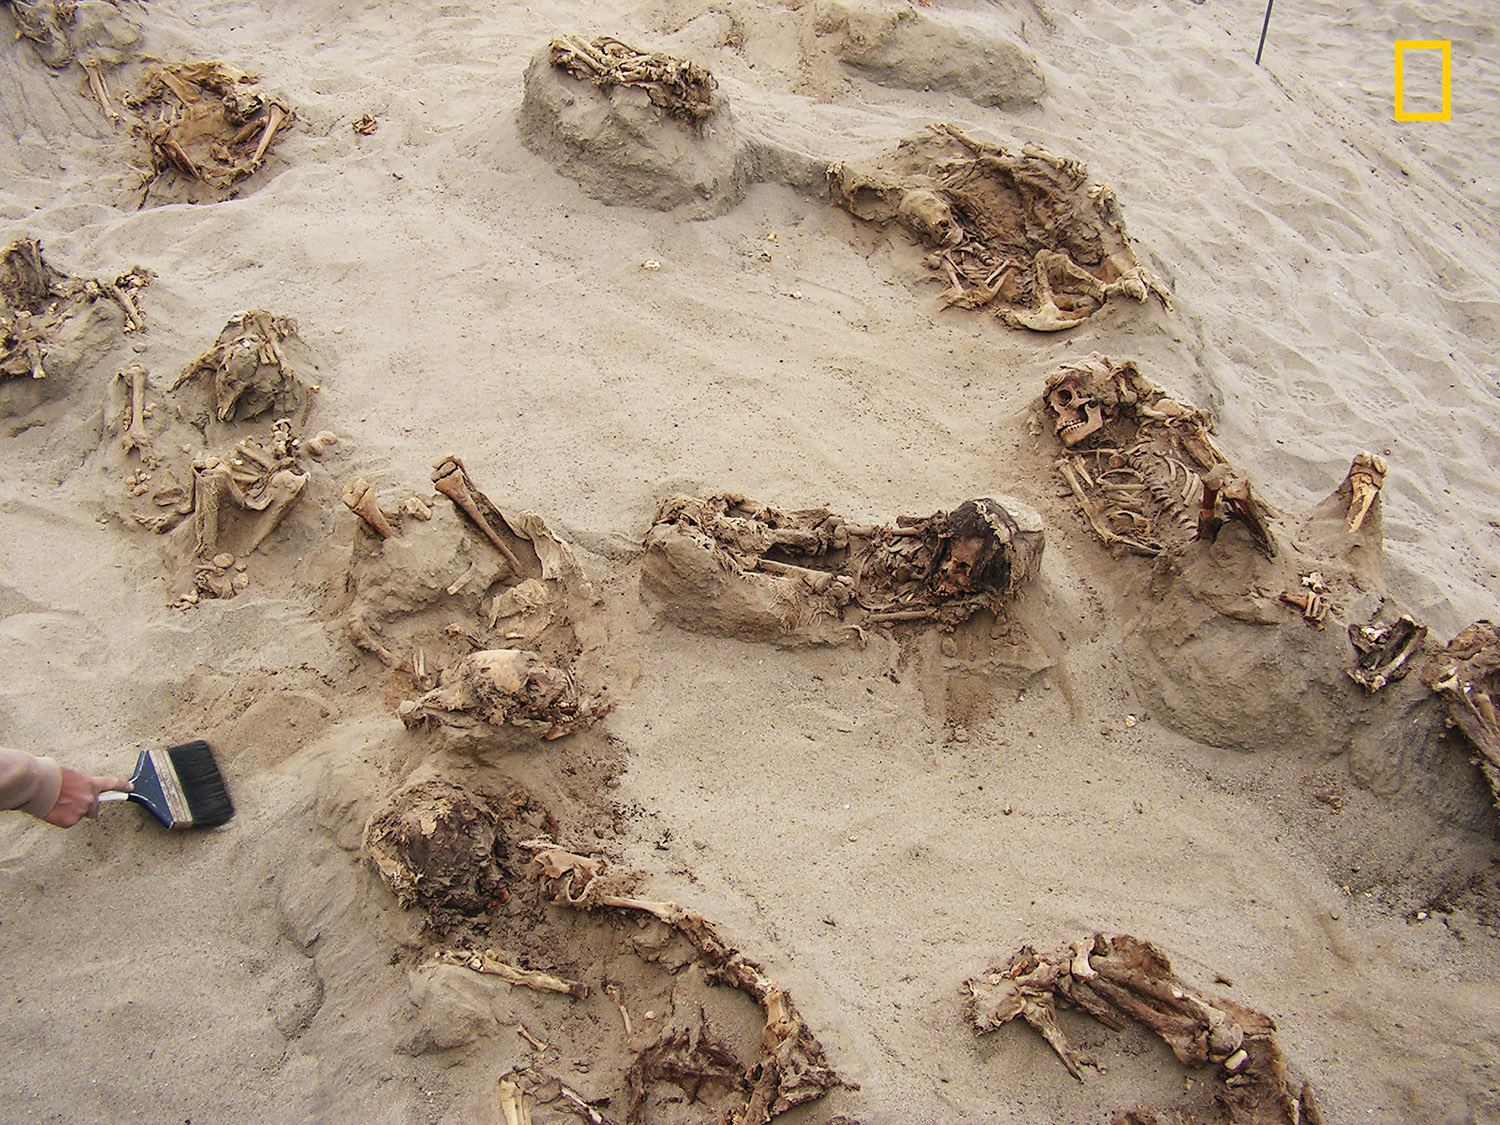 Preserved in dry sand for more than 500 years, more than a dozen children were revealed over the course of a day by archaeologists. The majority of the ritual victims were between eight and12 years old when they died. The work is supported by grants from the National Geographic Society. (Credit: Gabriel Prieto/National Geographic)